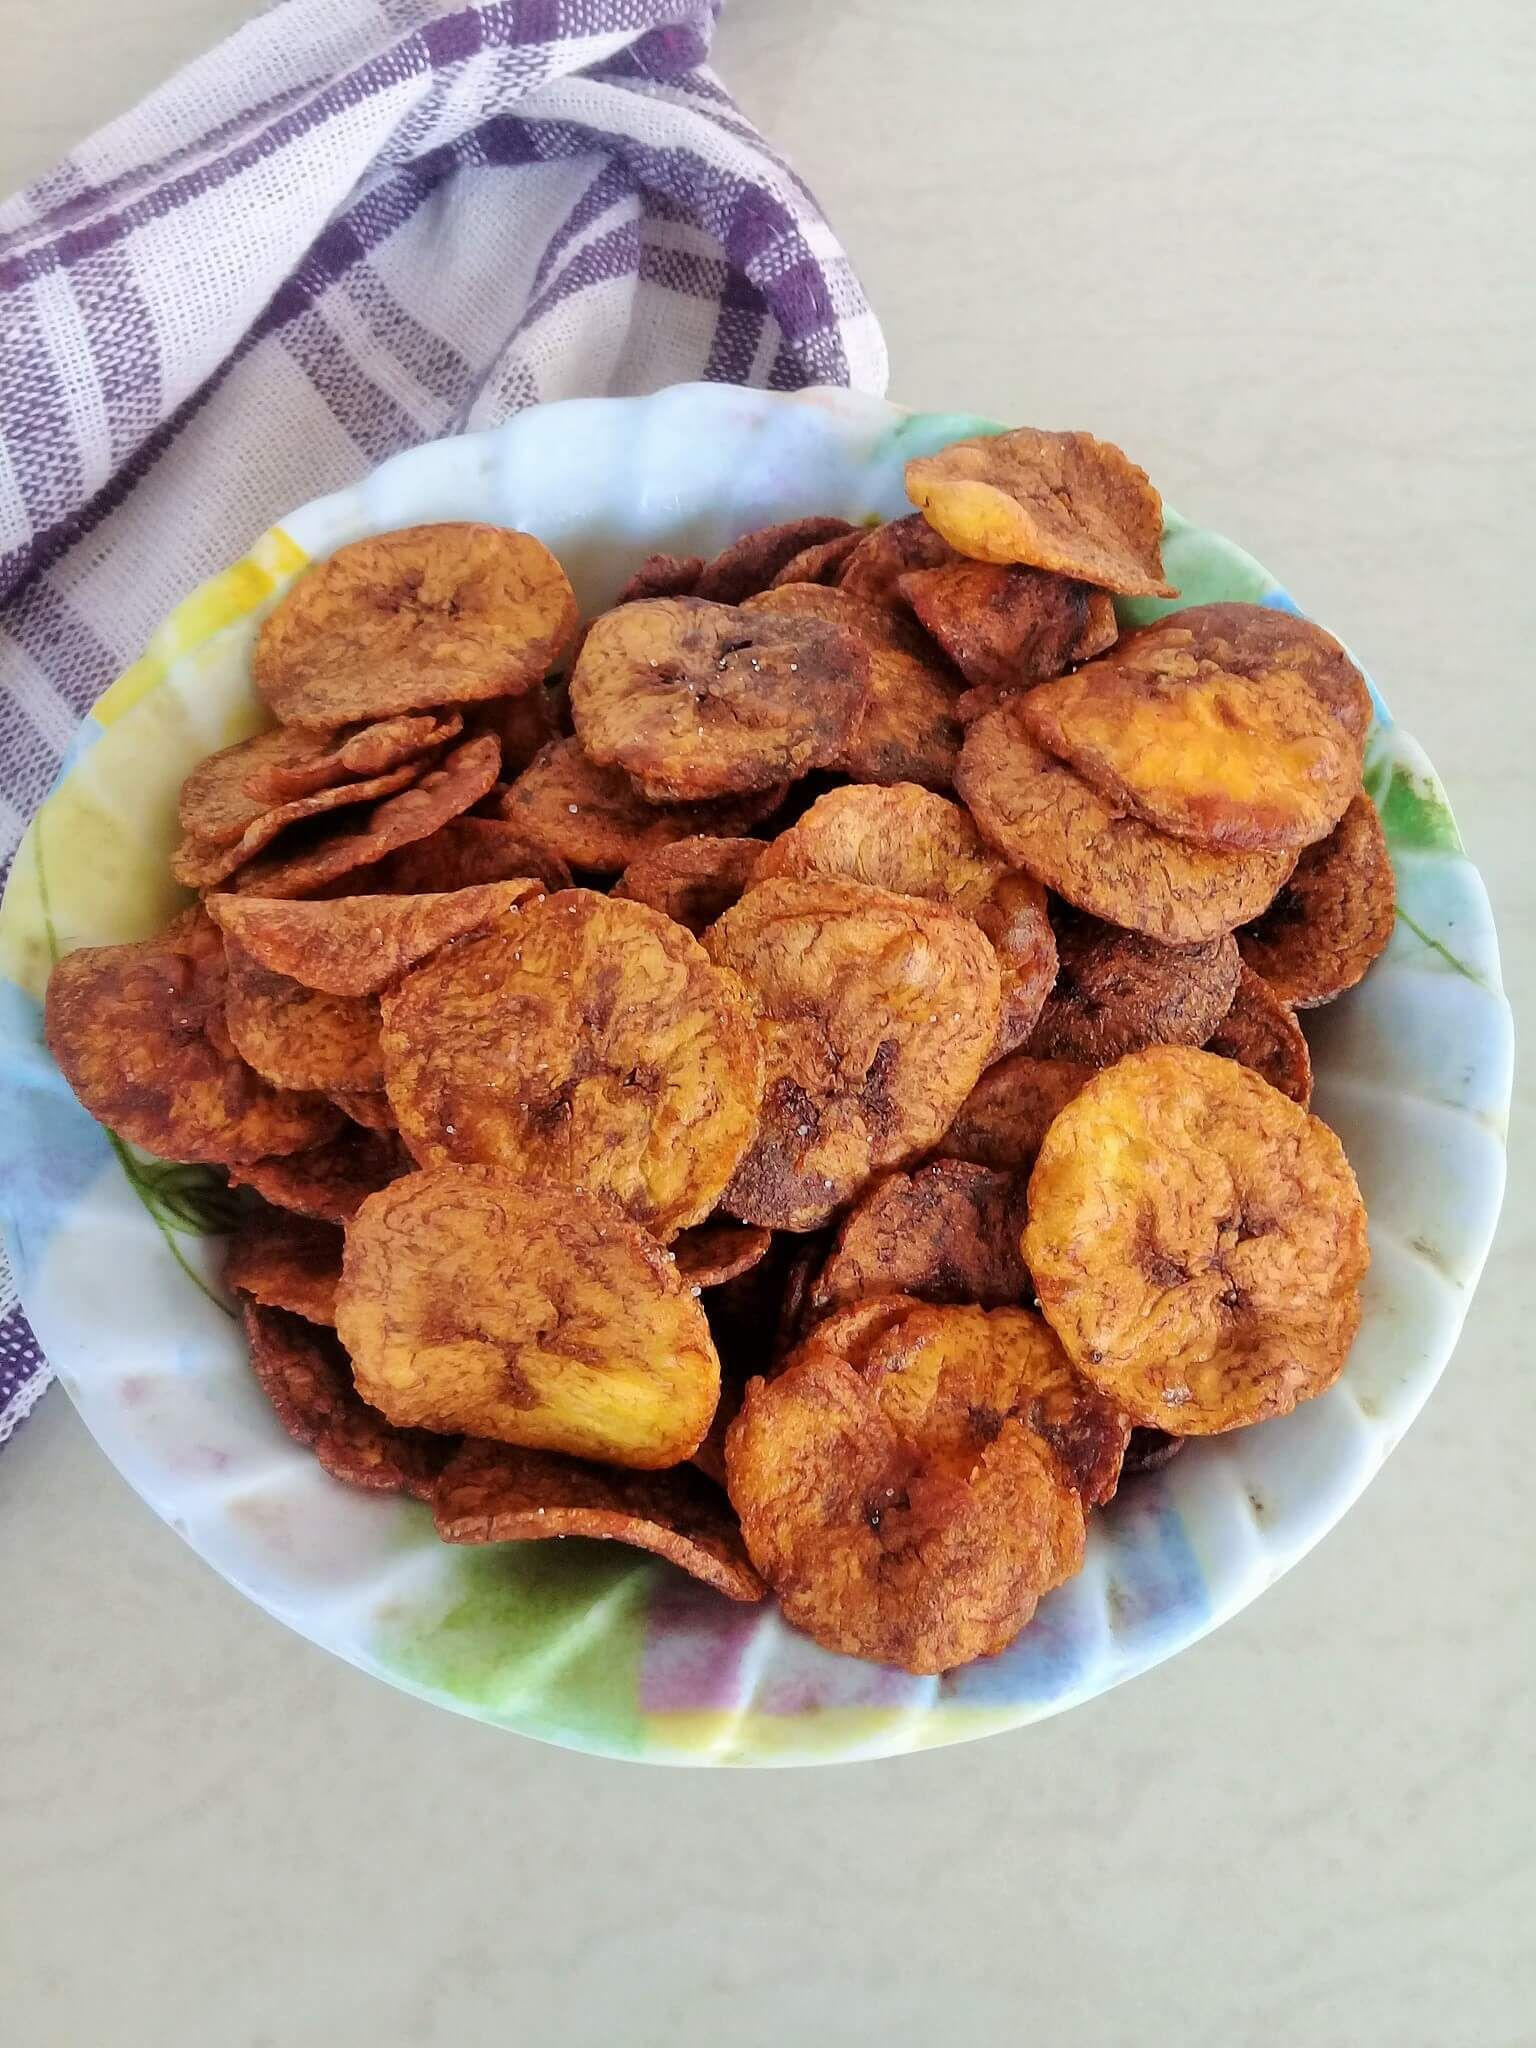 How To Make Crisp Ripe Plantain Chips Plantain Ghana Africa Chips Ripe Plantain Plantain Chips Plantain Recipes